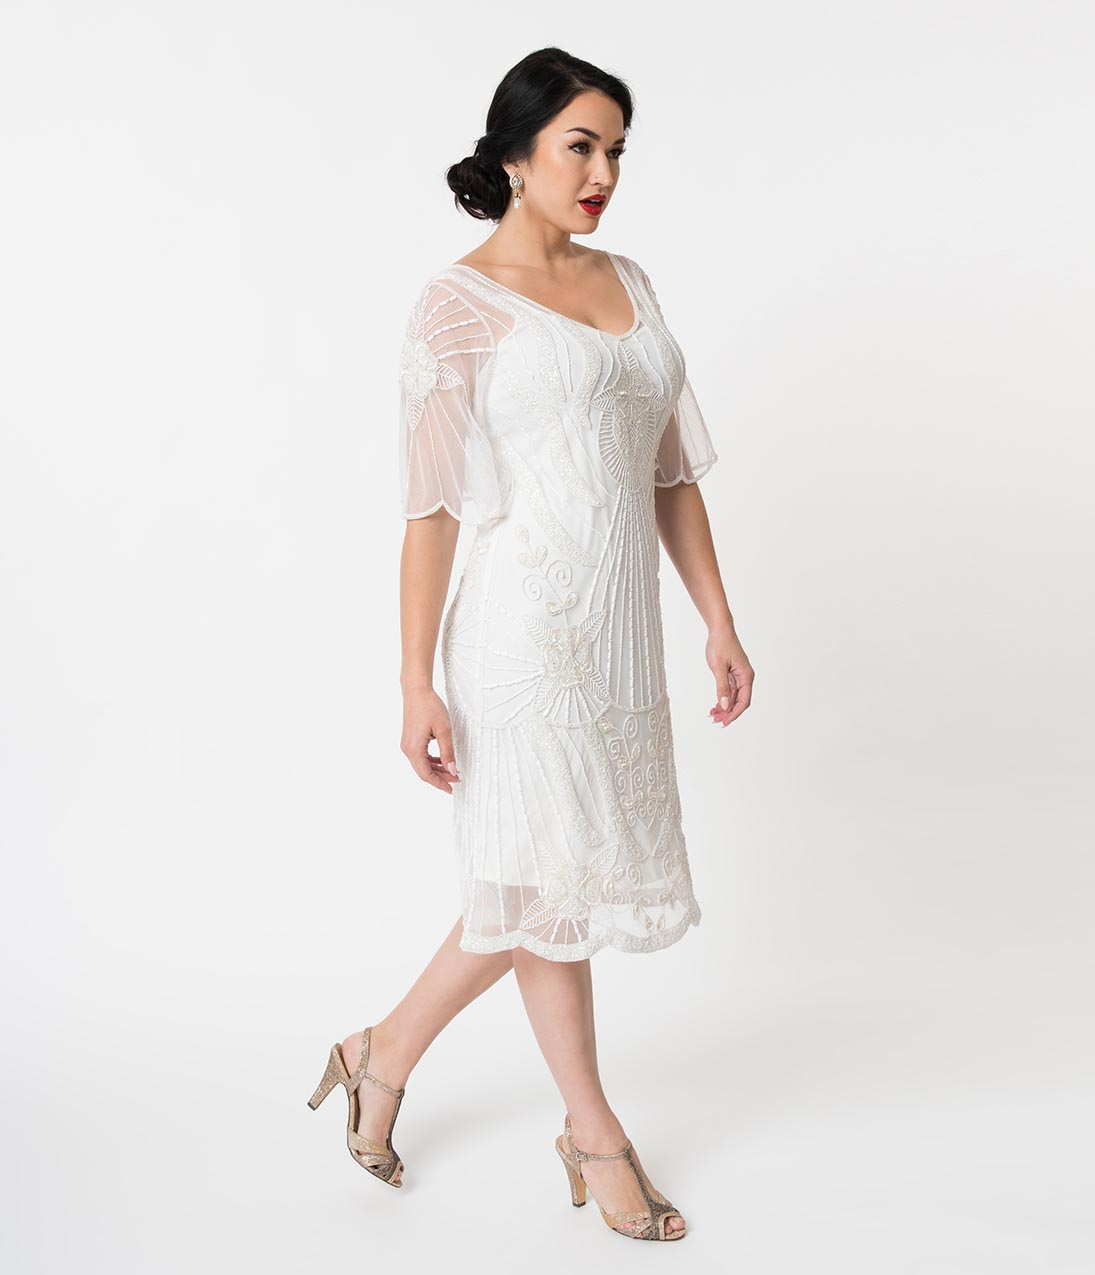 1920s Wedding Dresses- Art Deco Wedding Dress, Gatsby Wedding Dress 1920S Style White Beaded Butterfly Short Sleeve Kate Cocktail Dress $188.00 AT vintagedancer.com